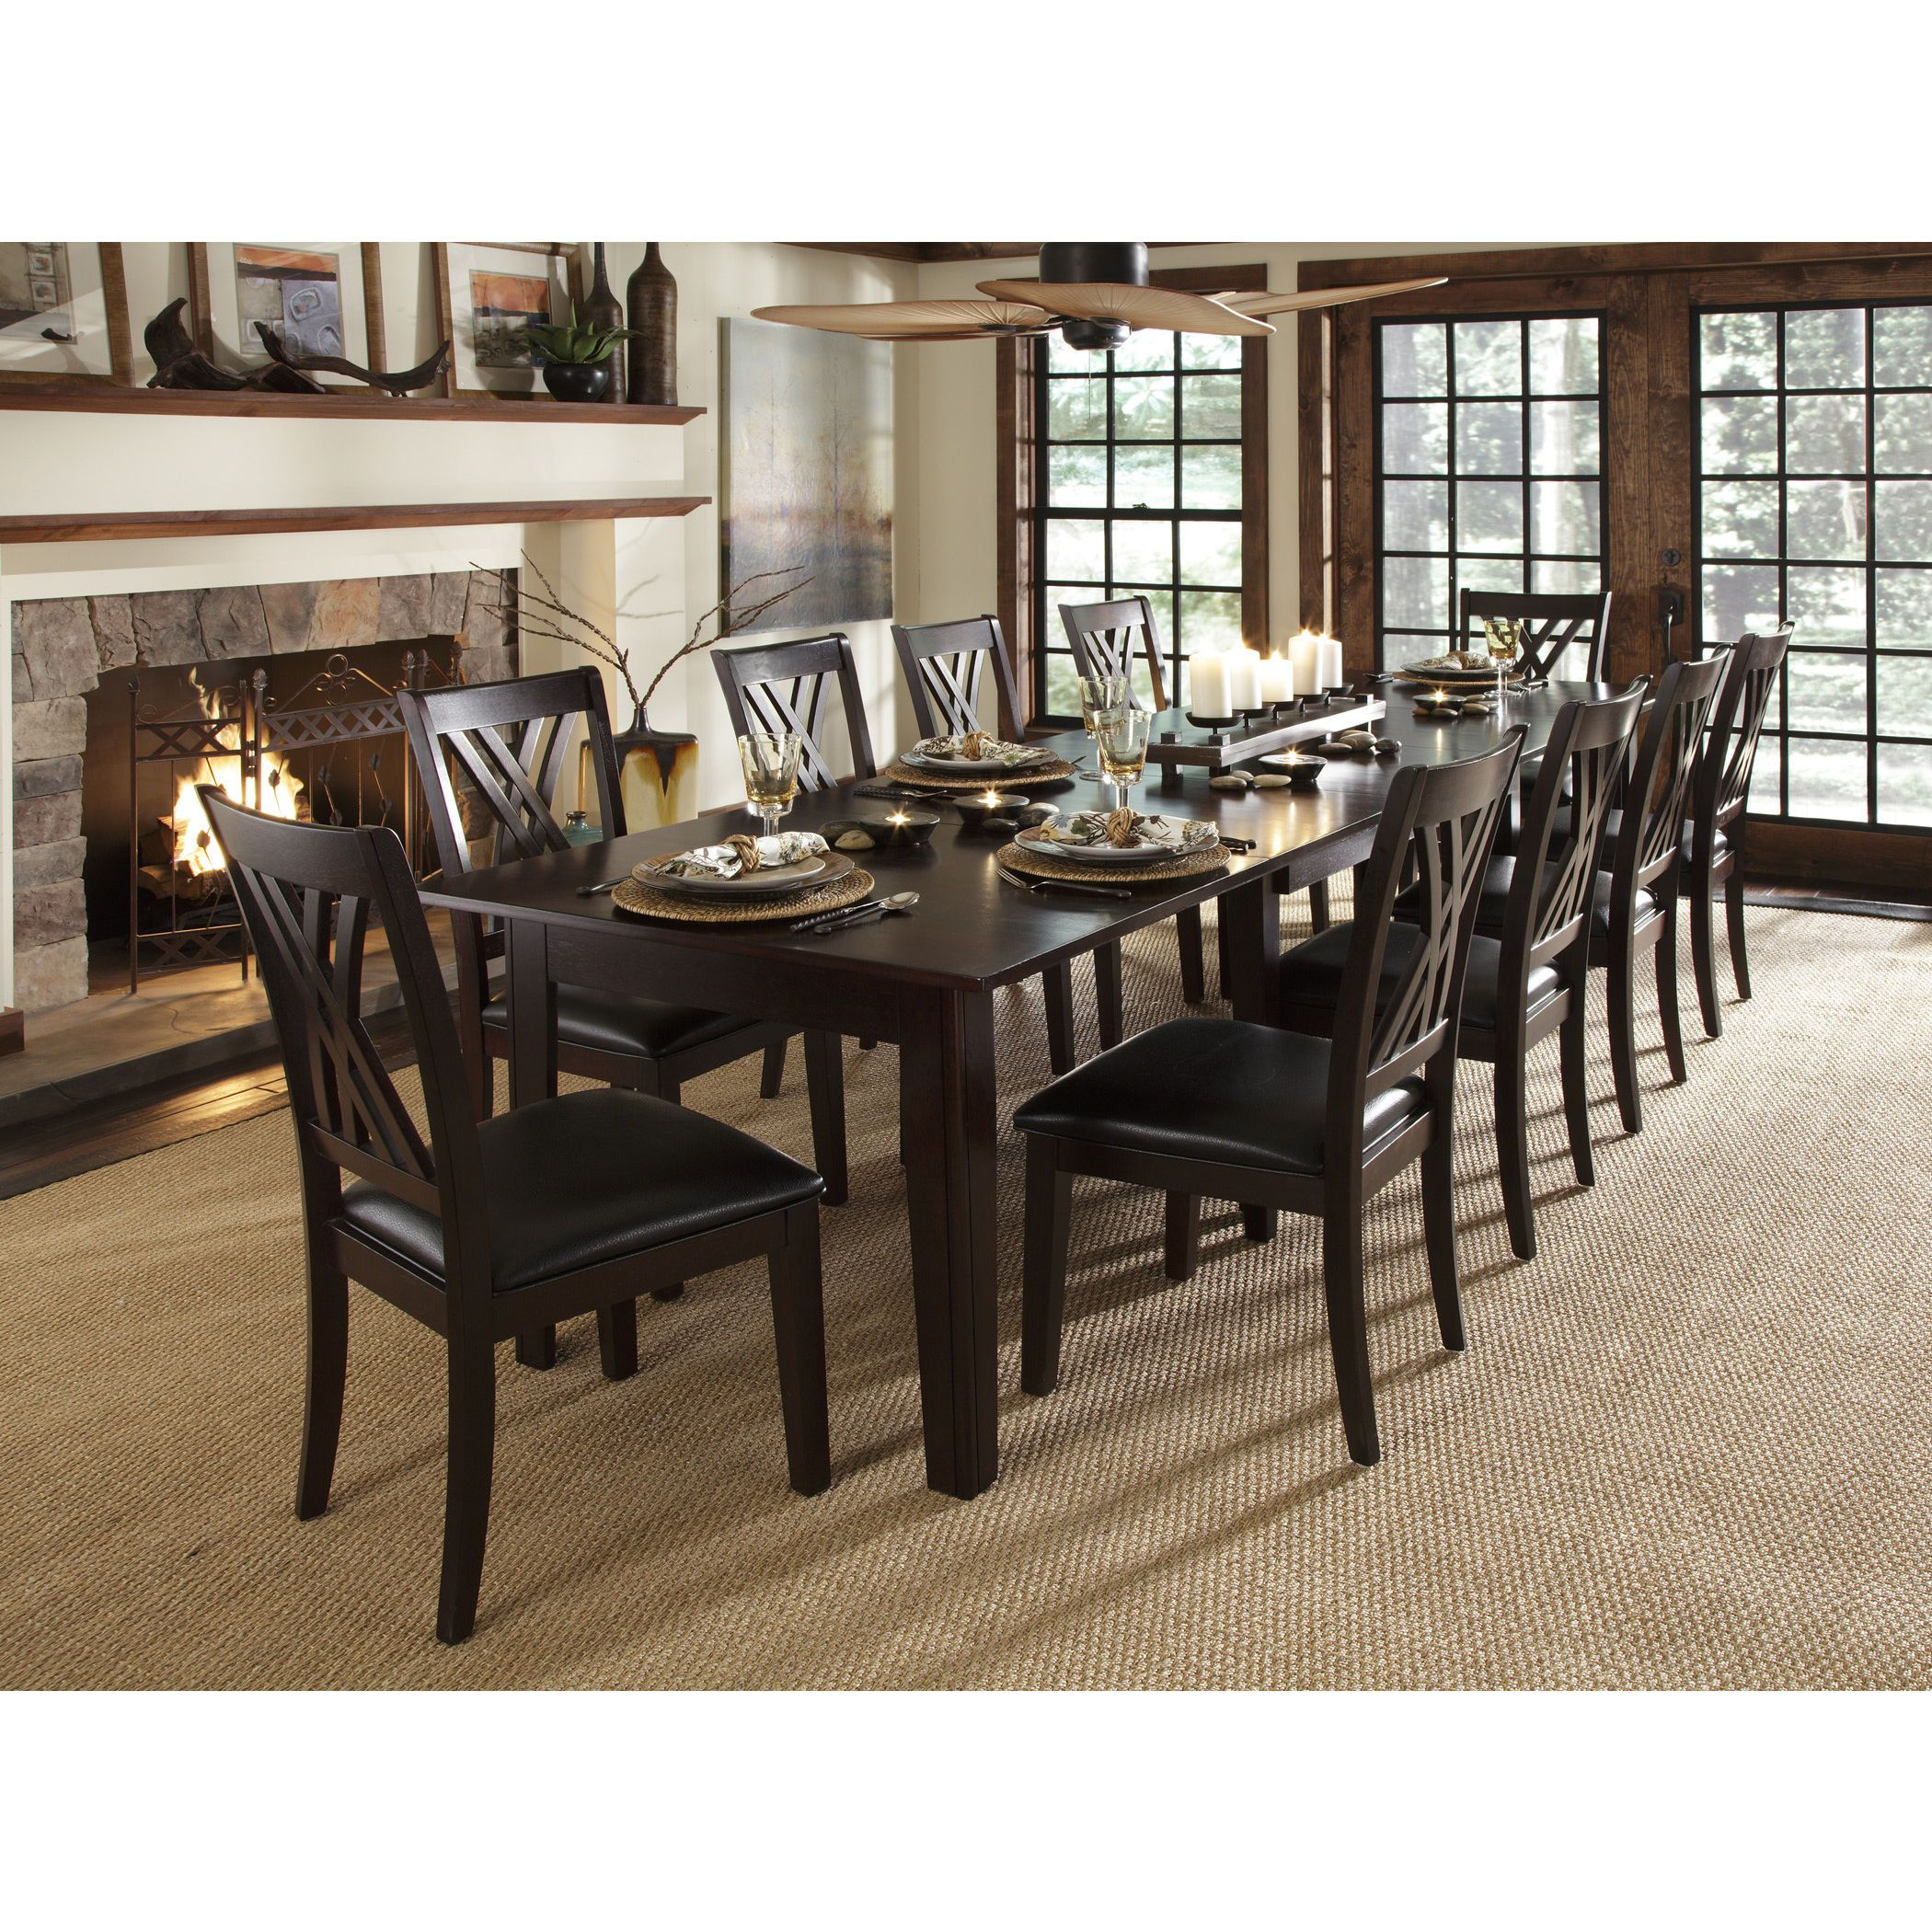 Size 9 Piece Sets Dining Room Find The Table And Chair